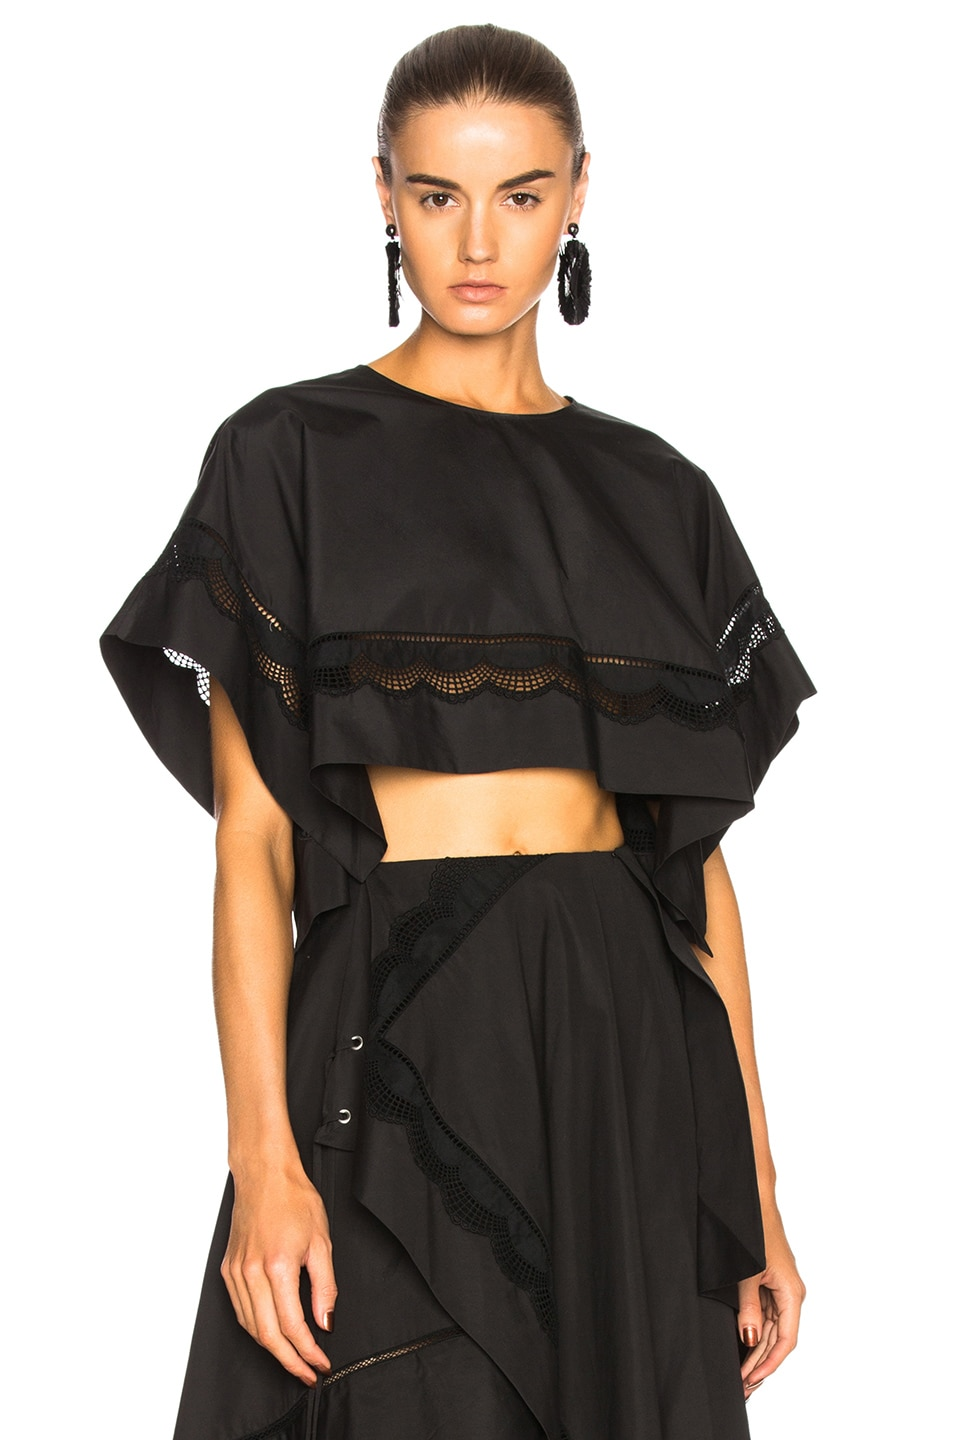 3.1 phillip lim Cropped Eyelet Top in Black